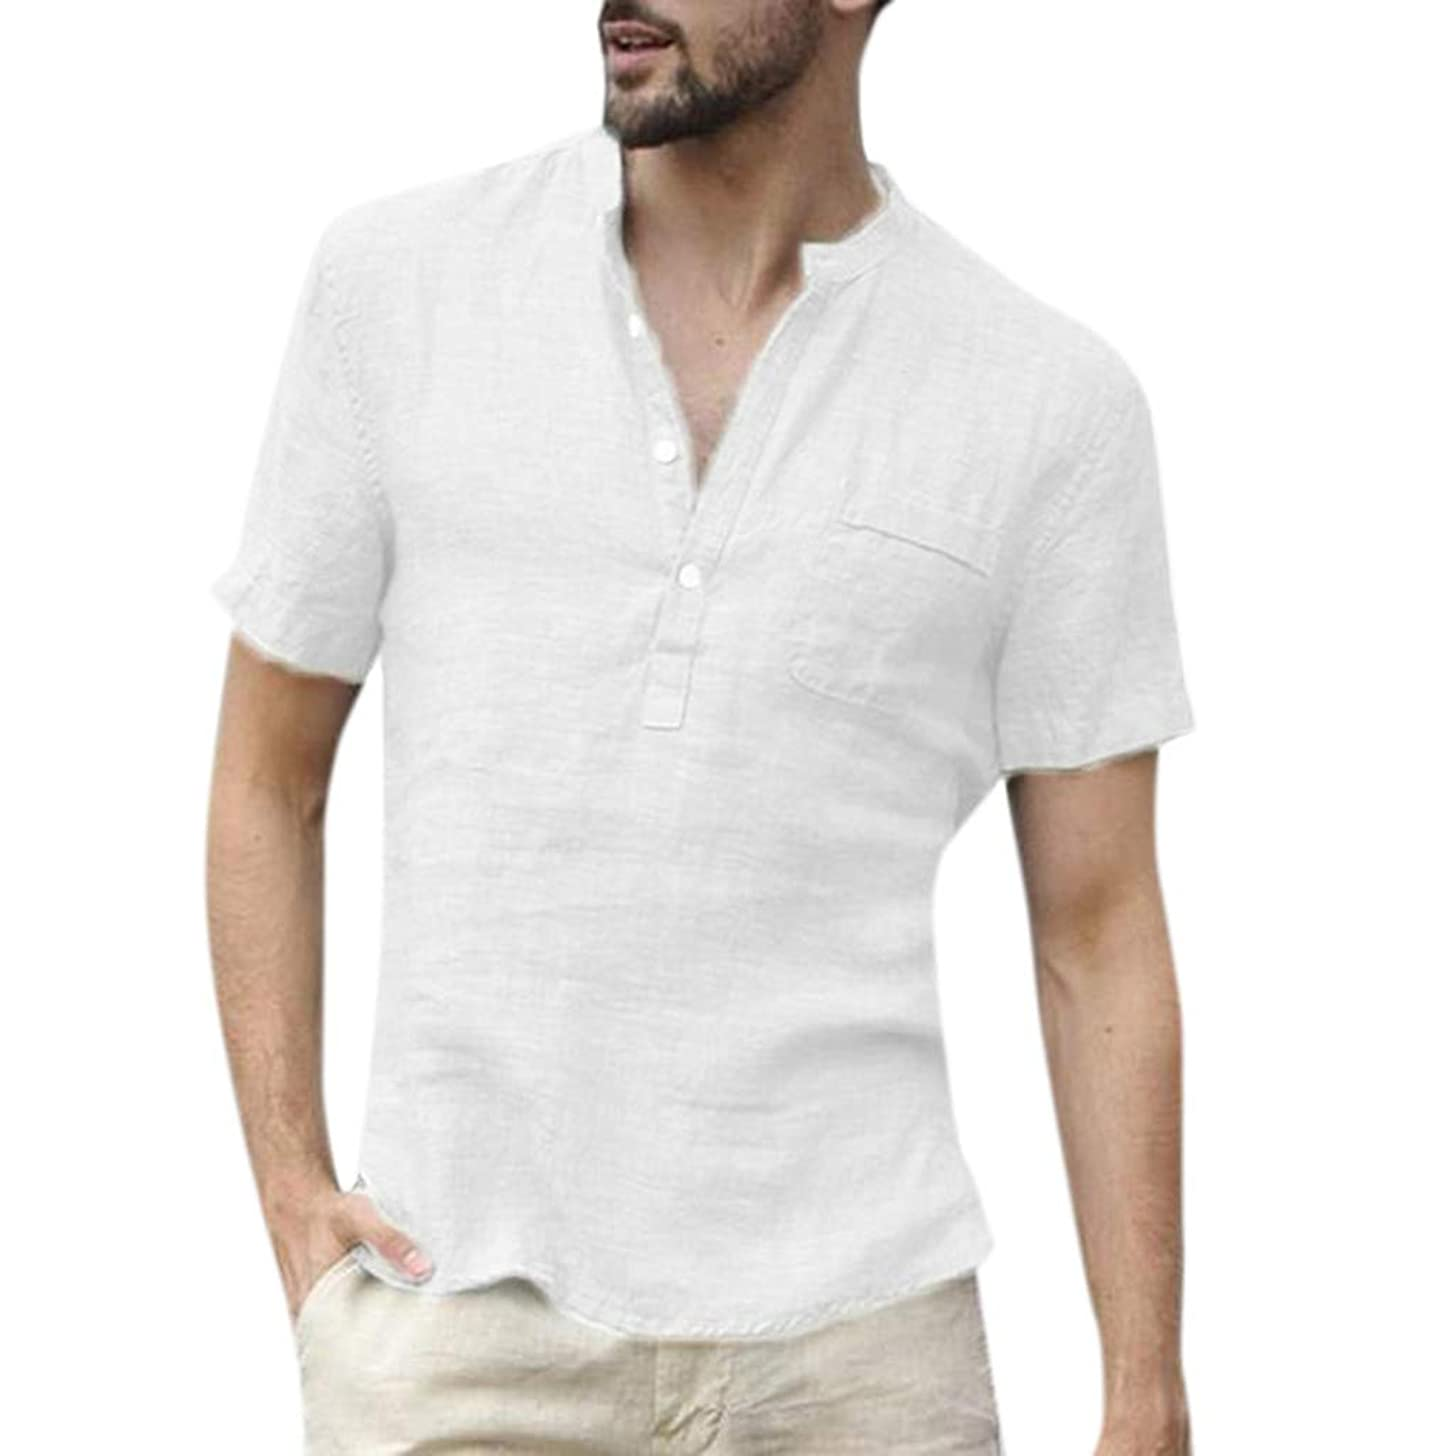 Nadition Casual Cotton Linen Tunic Top ? Men's Summer Pure Color Tops Retro V Neck Lightweight Comfy T Shirts Blouse